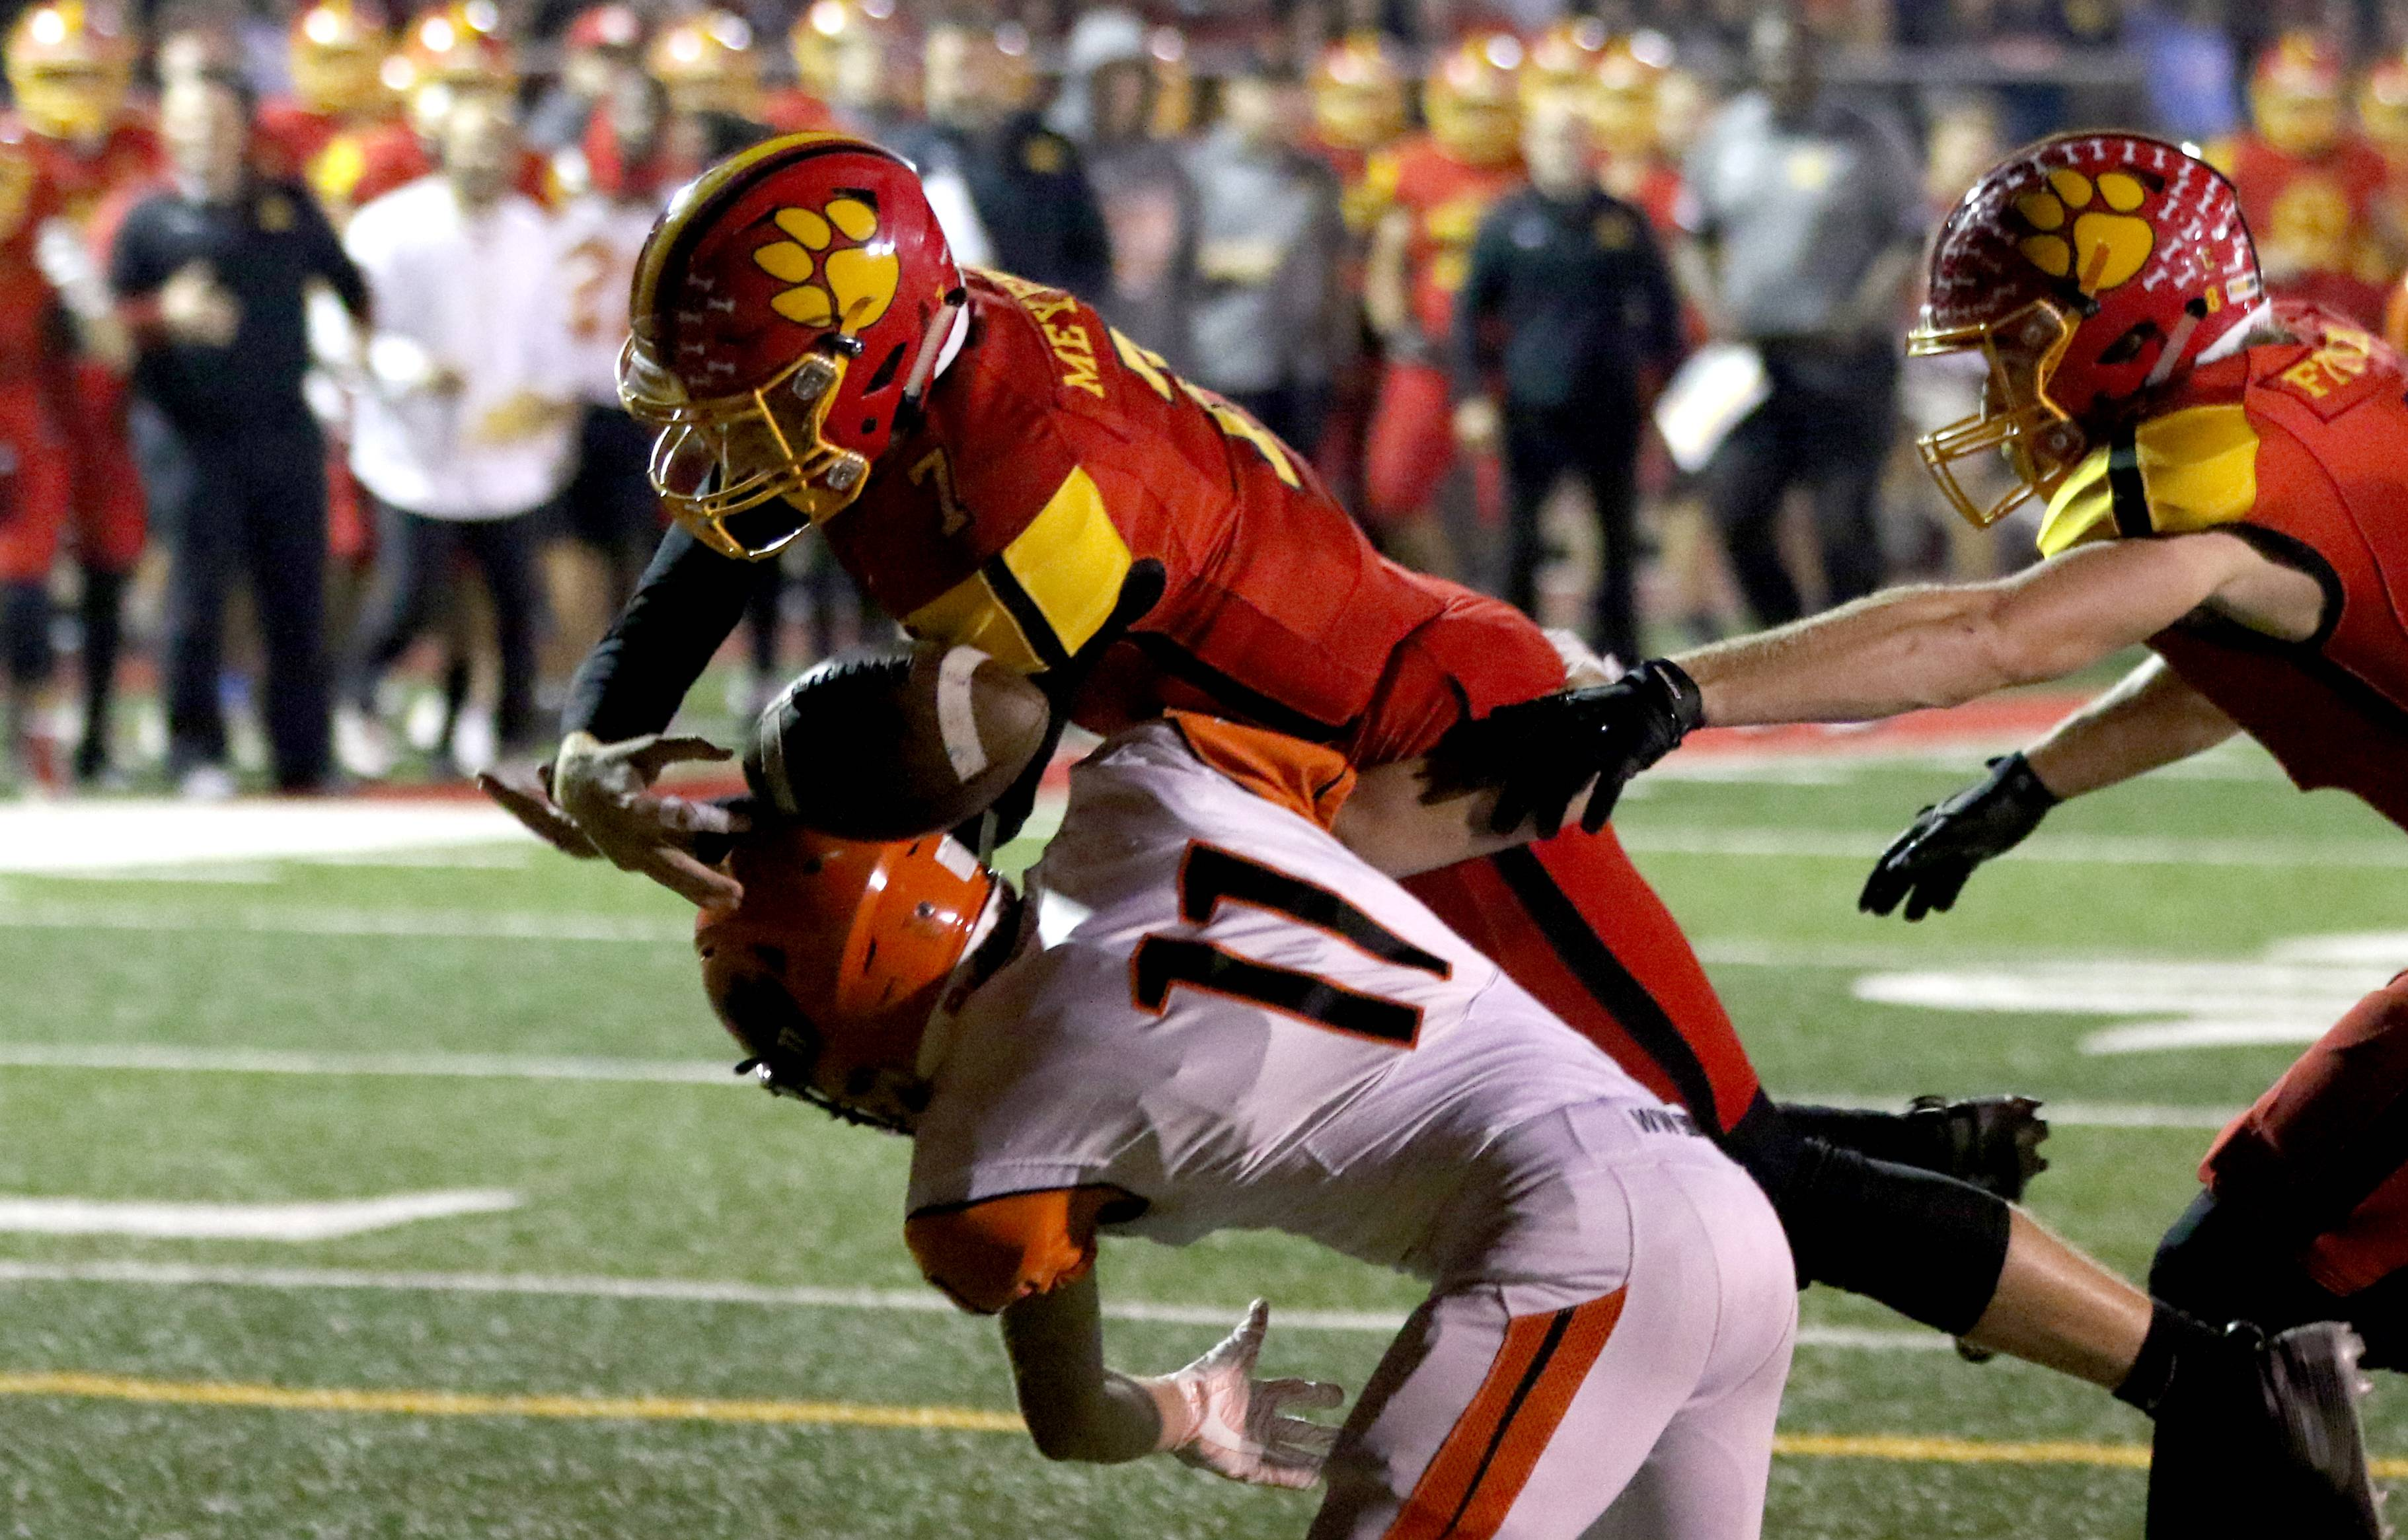 The ball pops loose from the hands of Batavia's Jack Meyers at the end zone against Wheaton Warrenville South at Bulldog Stadium in Batavia Friday night. Meyers recovered the ball for a touchdown.